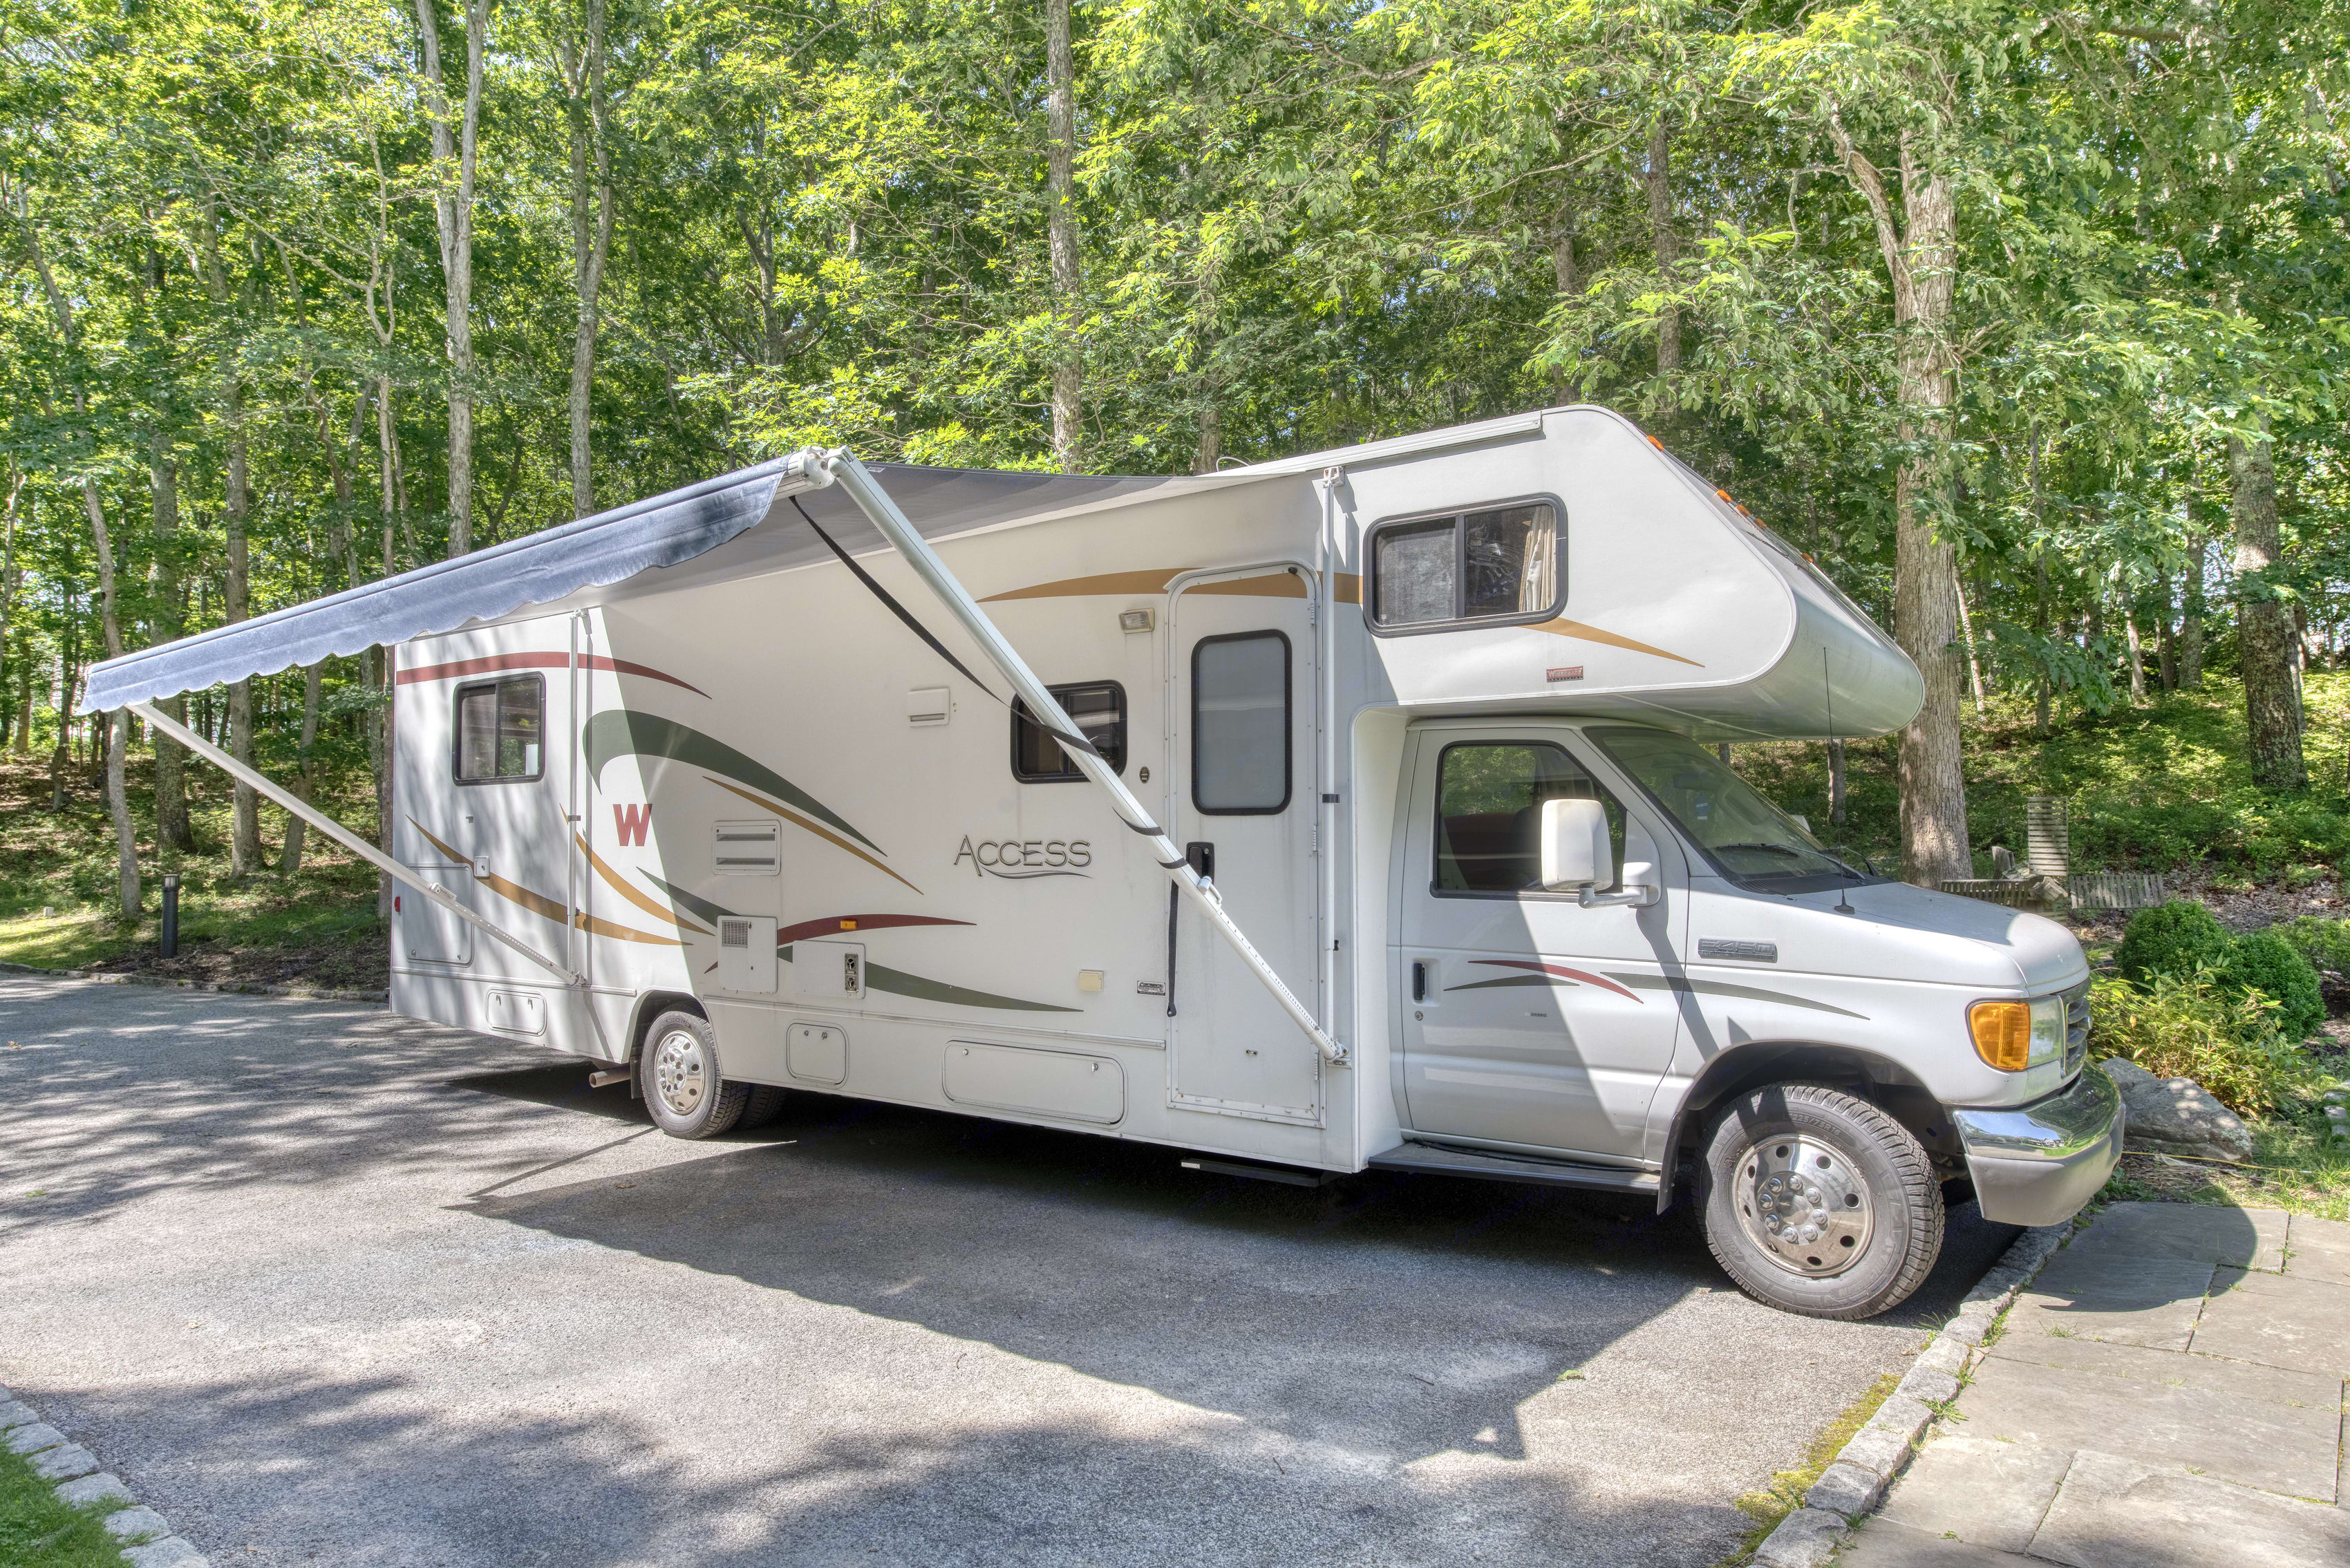 18 ft X 8 ft awing for outdoor patio area. . Winnebago Access 2008